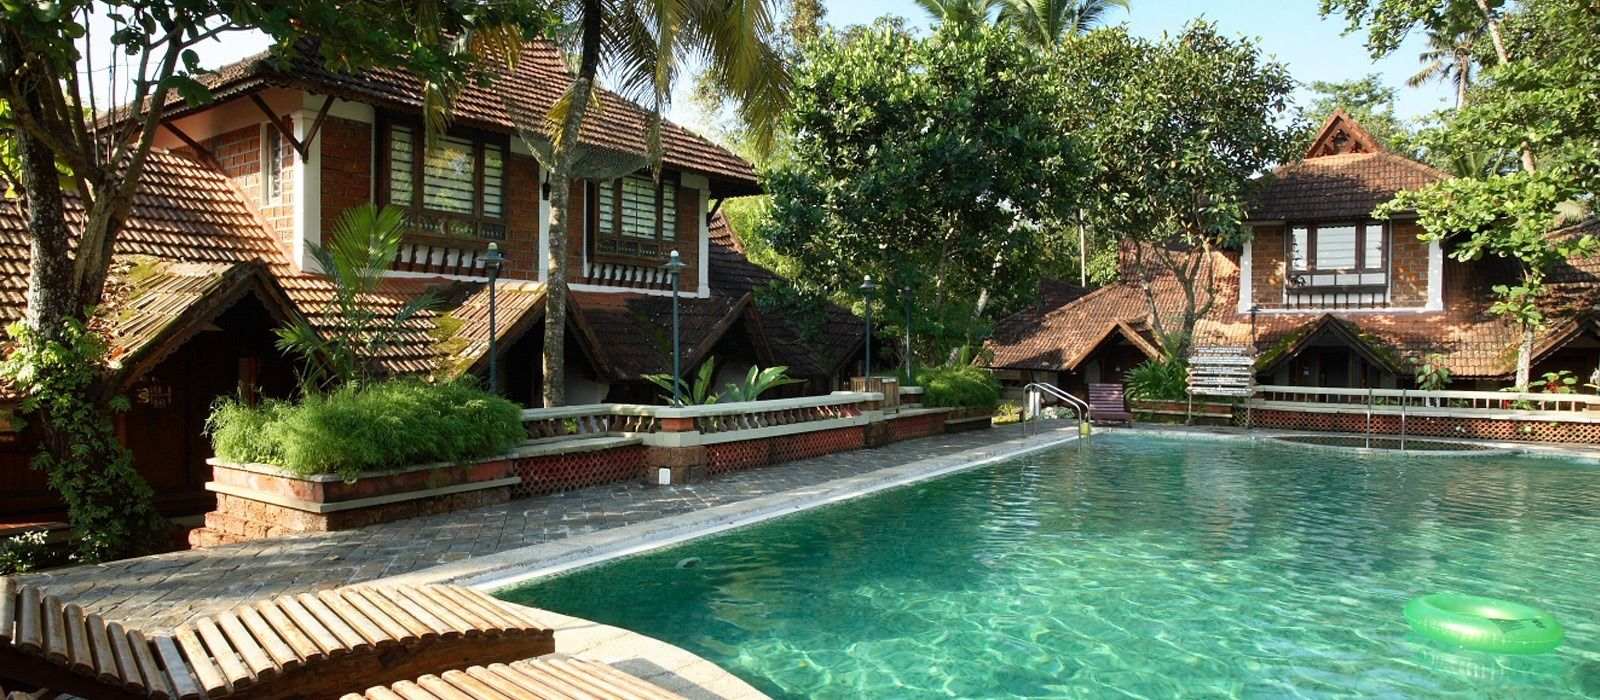 Hotel Punnamada Backwater Resort Südindien